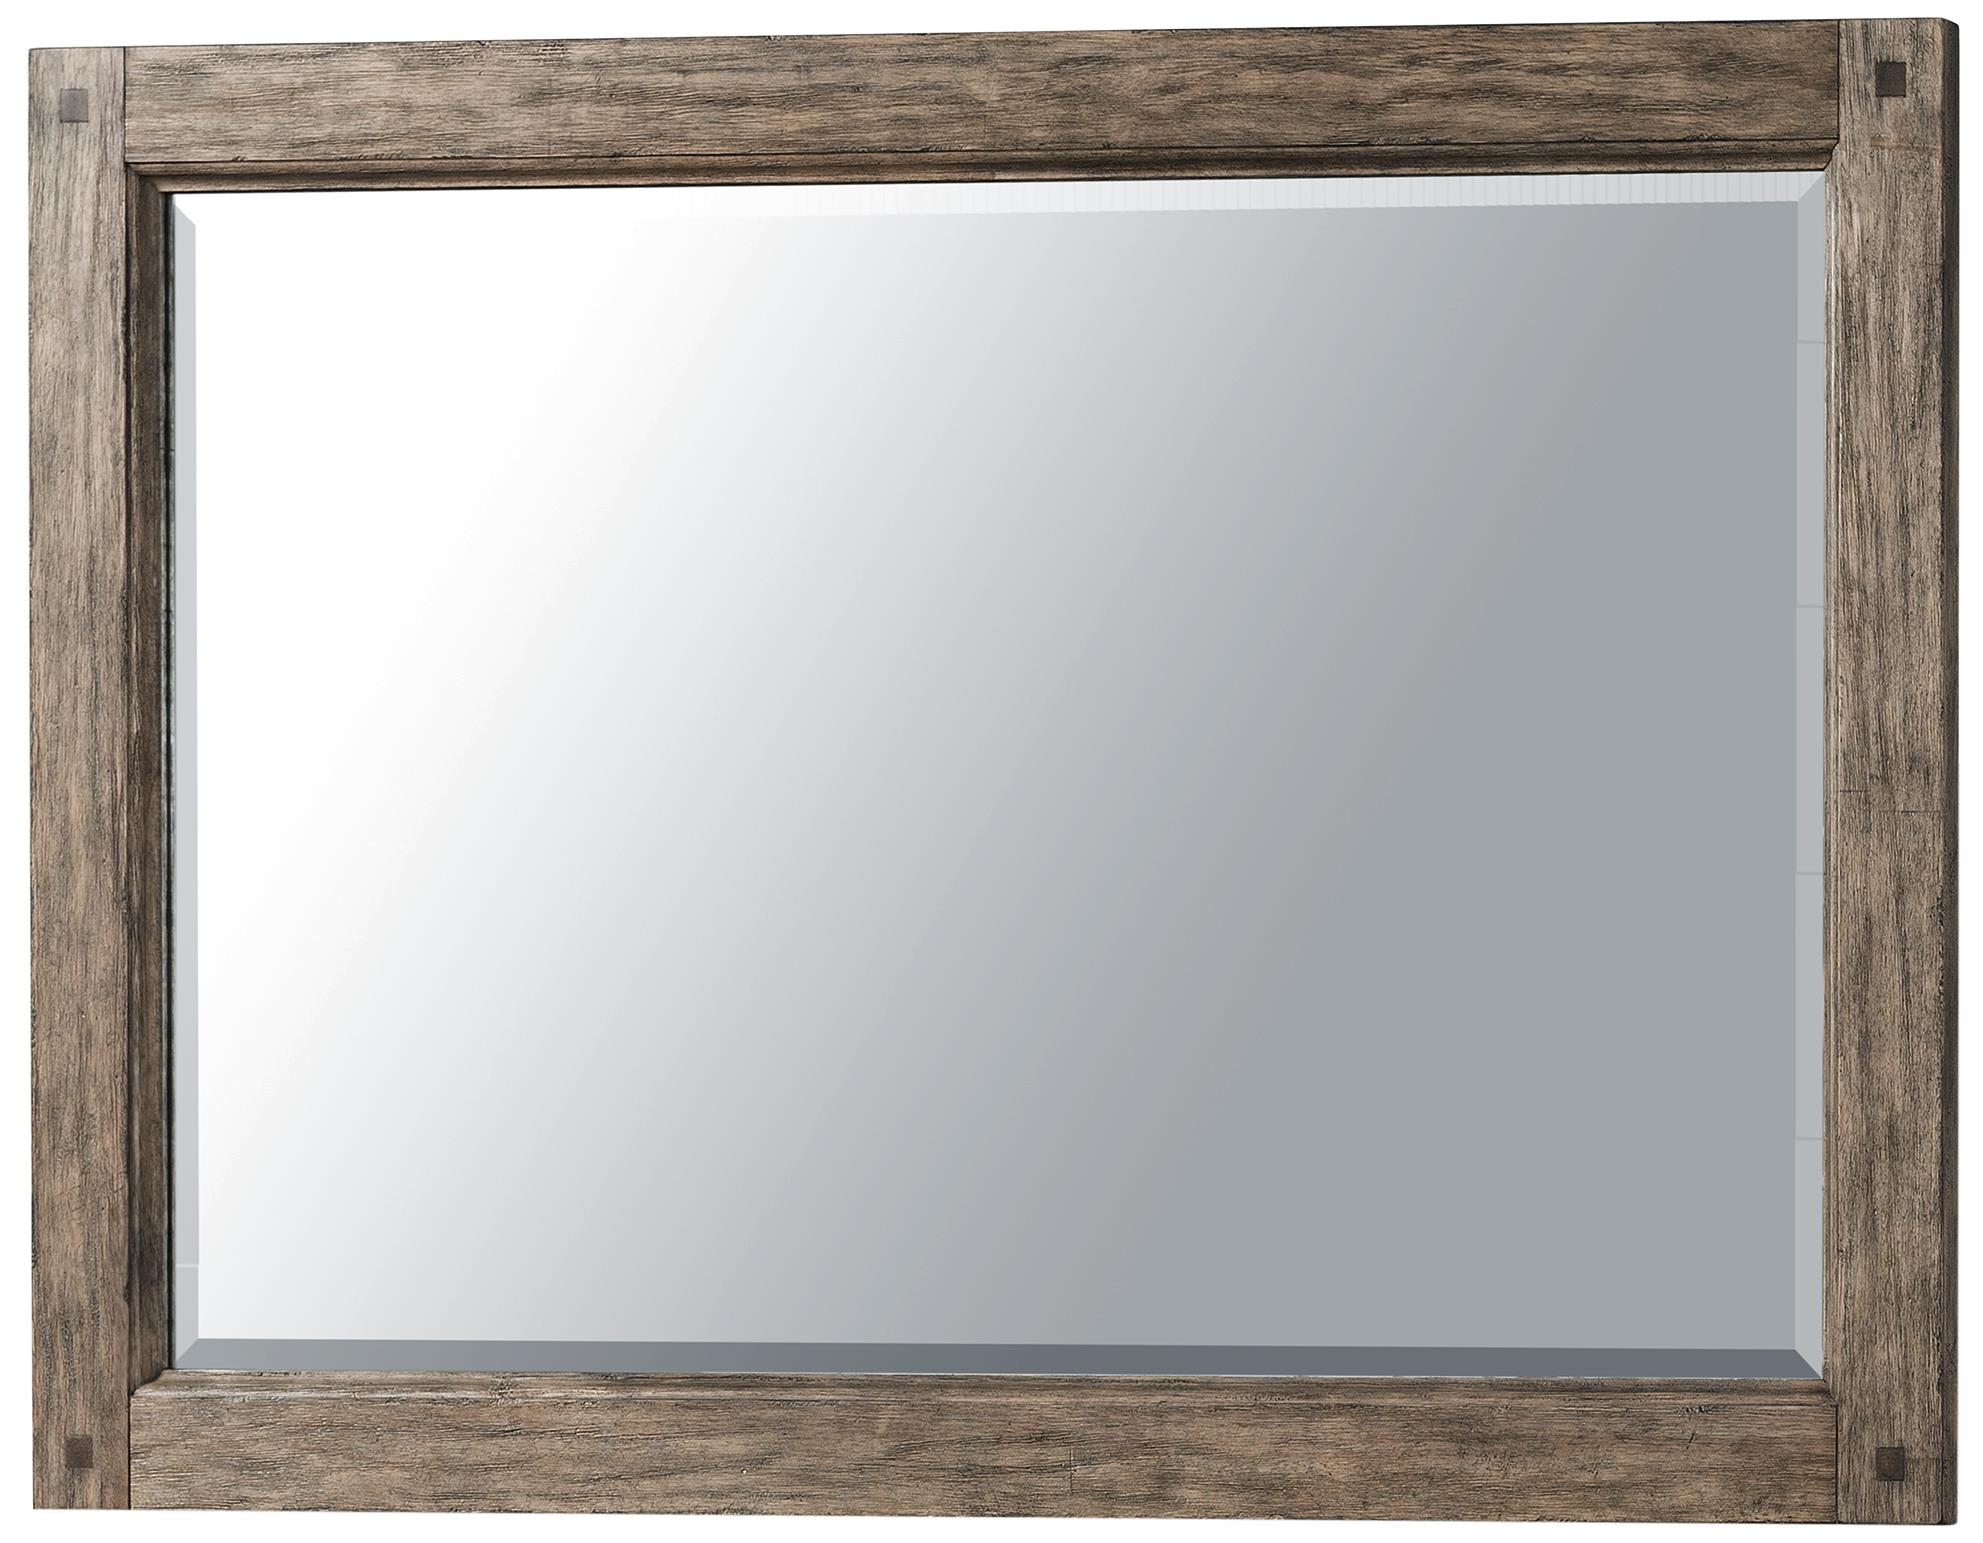 Morris Home Furnishings River Falls River Falls Mirror - Item Number: 451-660 MIRR